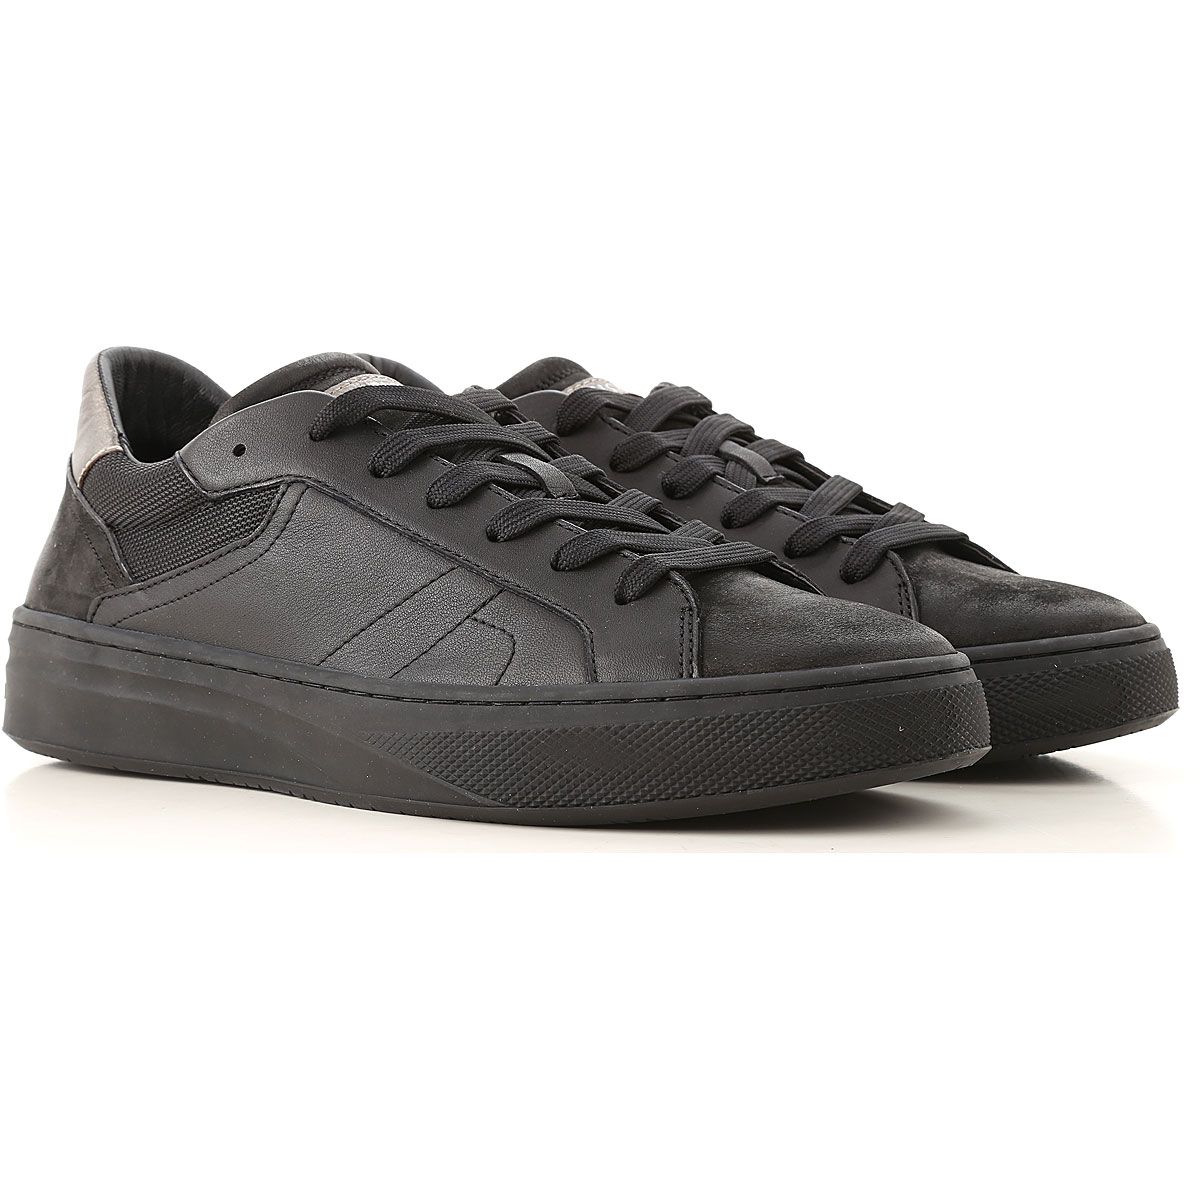 Image of Crime Sneakers for Men, Black, Leather, 2017, 10 8 9